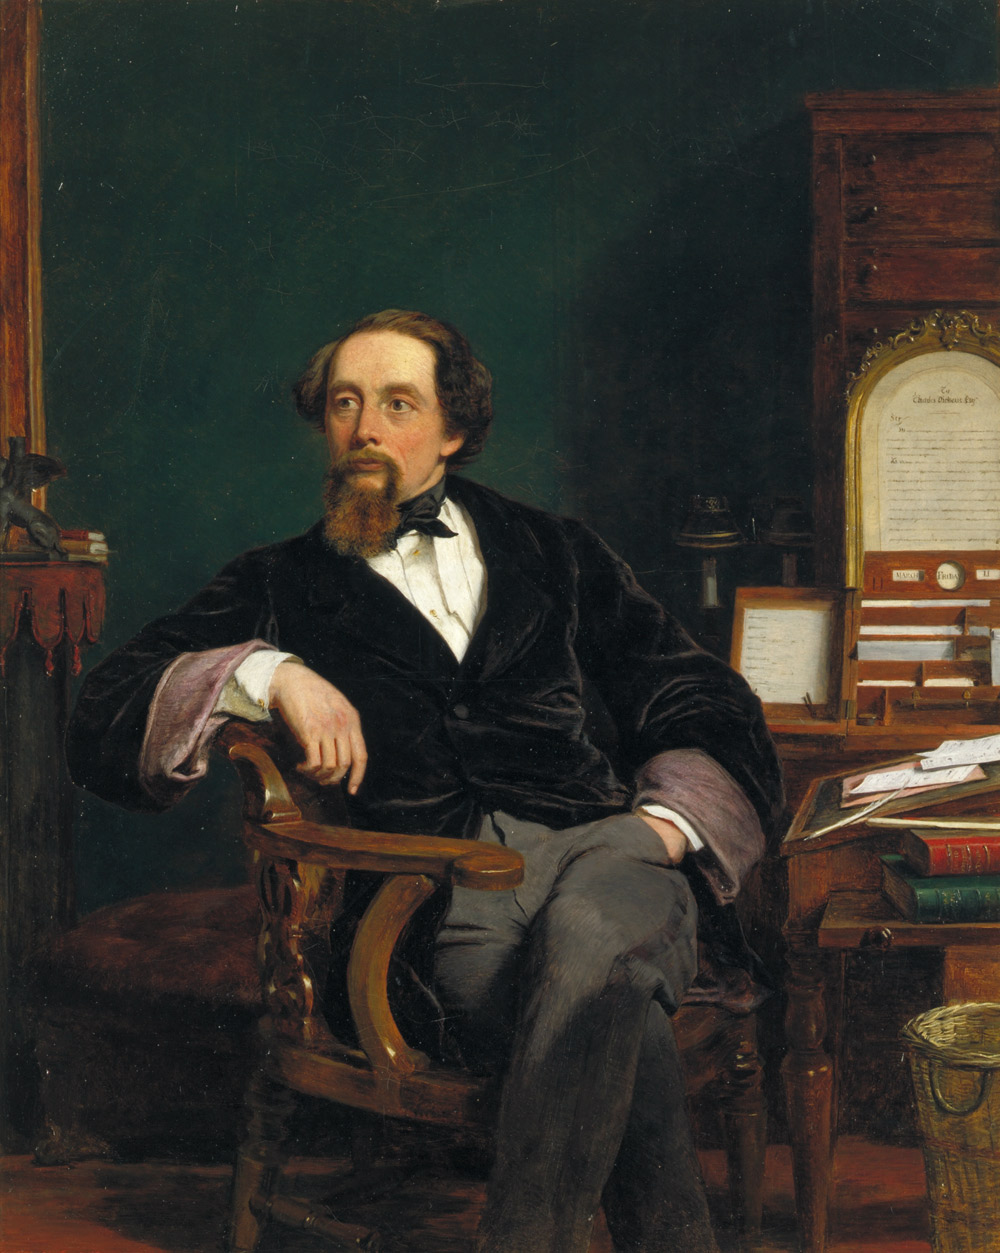 england has produced a great humanist in charles dickens Charles dickens set great expectations during the time that england was becoming a wealthy world power machines were making factories more productive, yet people lived in awful conditions, and such themes carry into the story.